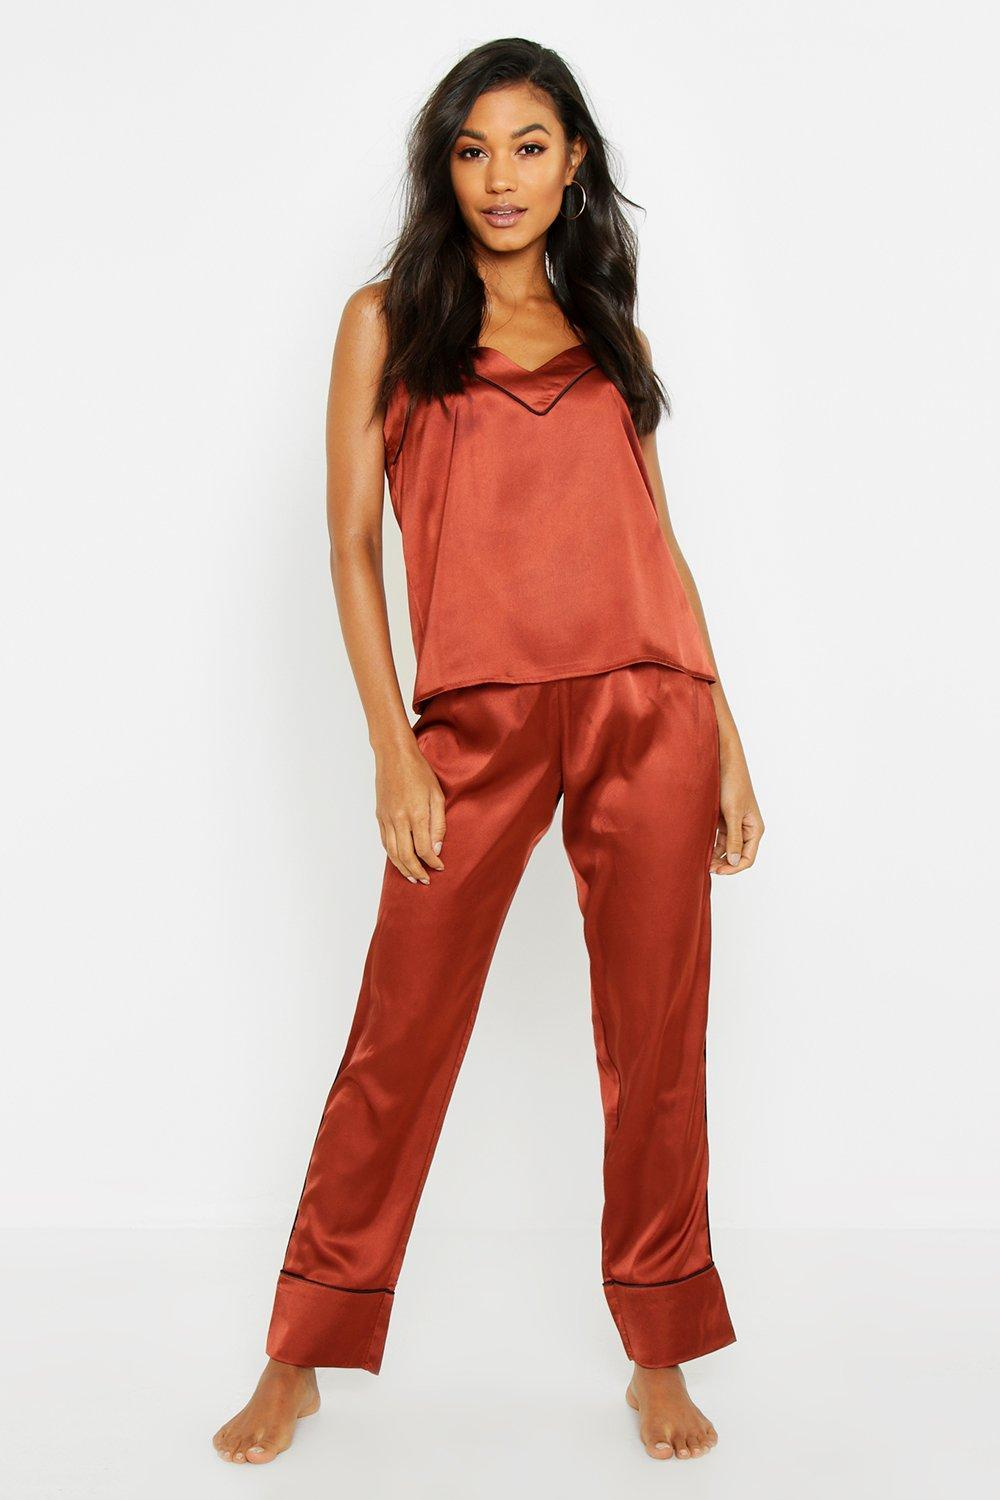 043bea42a2 Boohoo Piped Cami   Trouser Pj Set in Red - Lyst